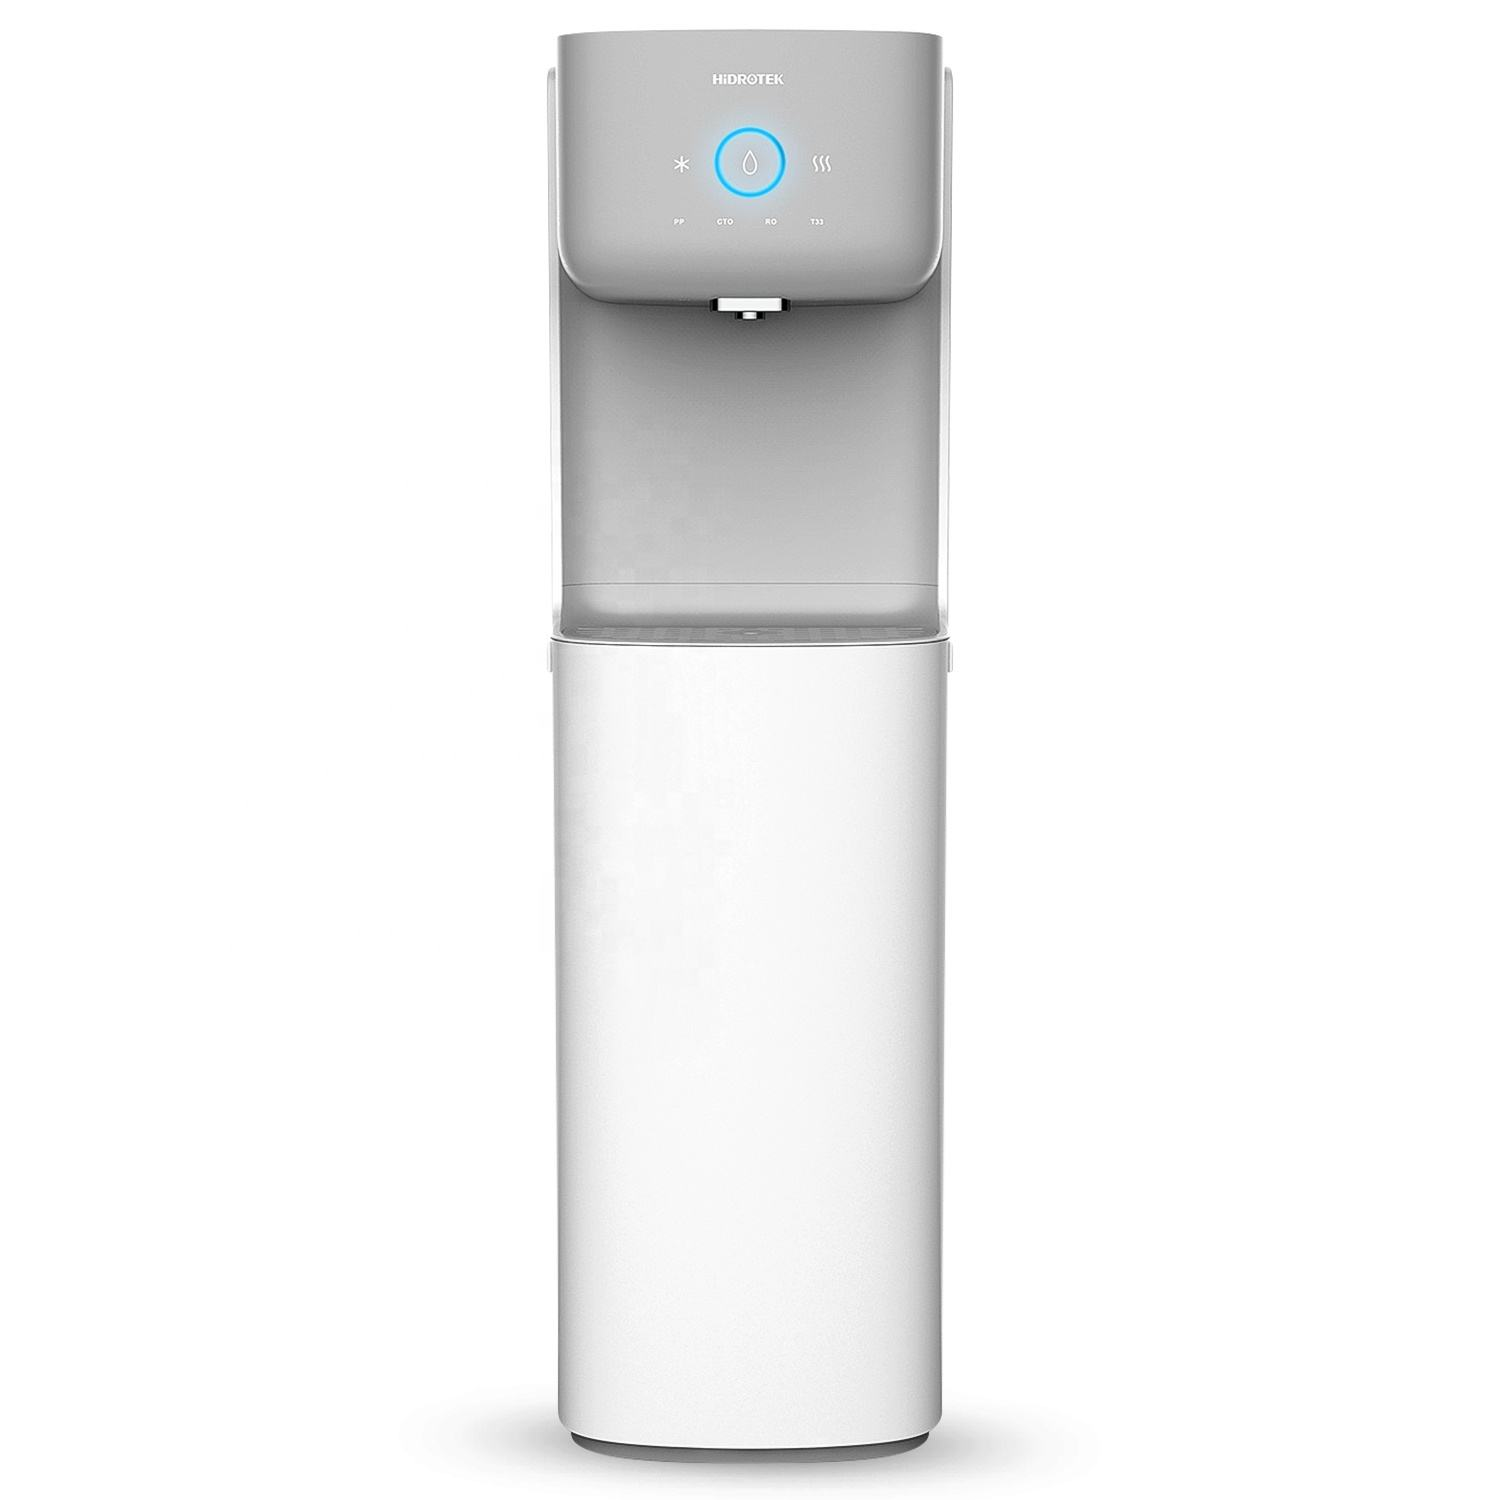 Water Dispenser OEM Standing Smart Hot Cold Water Dispenser With Soda Water Maker